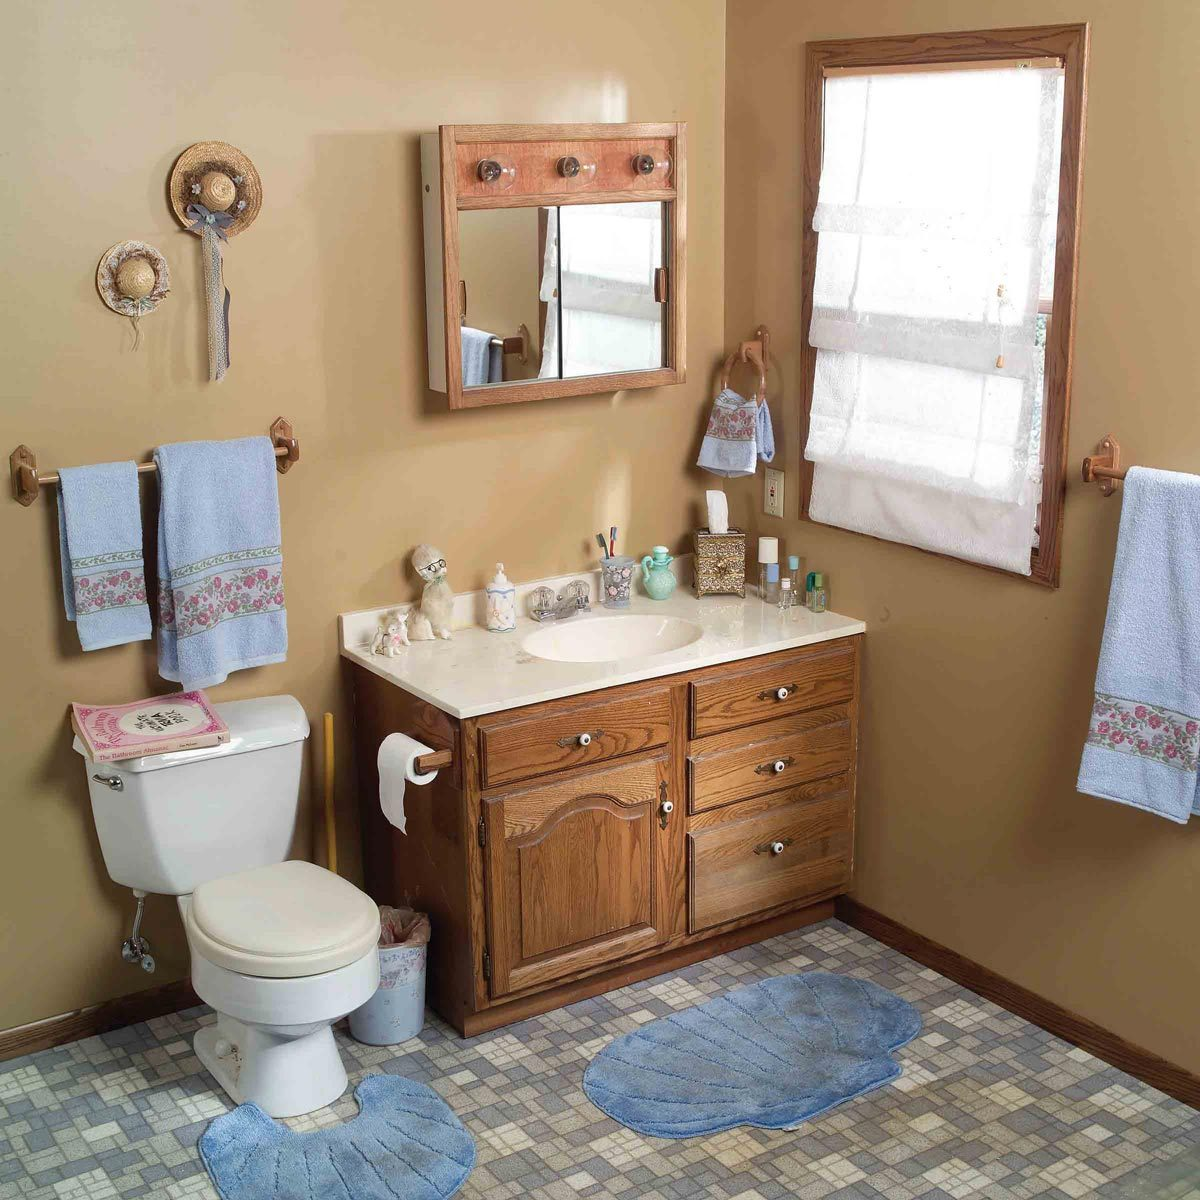 Diy Bathroom Makeovers: 7 Before And After Bathroom Makeovers You Can Do In A